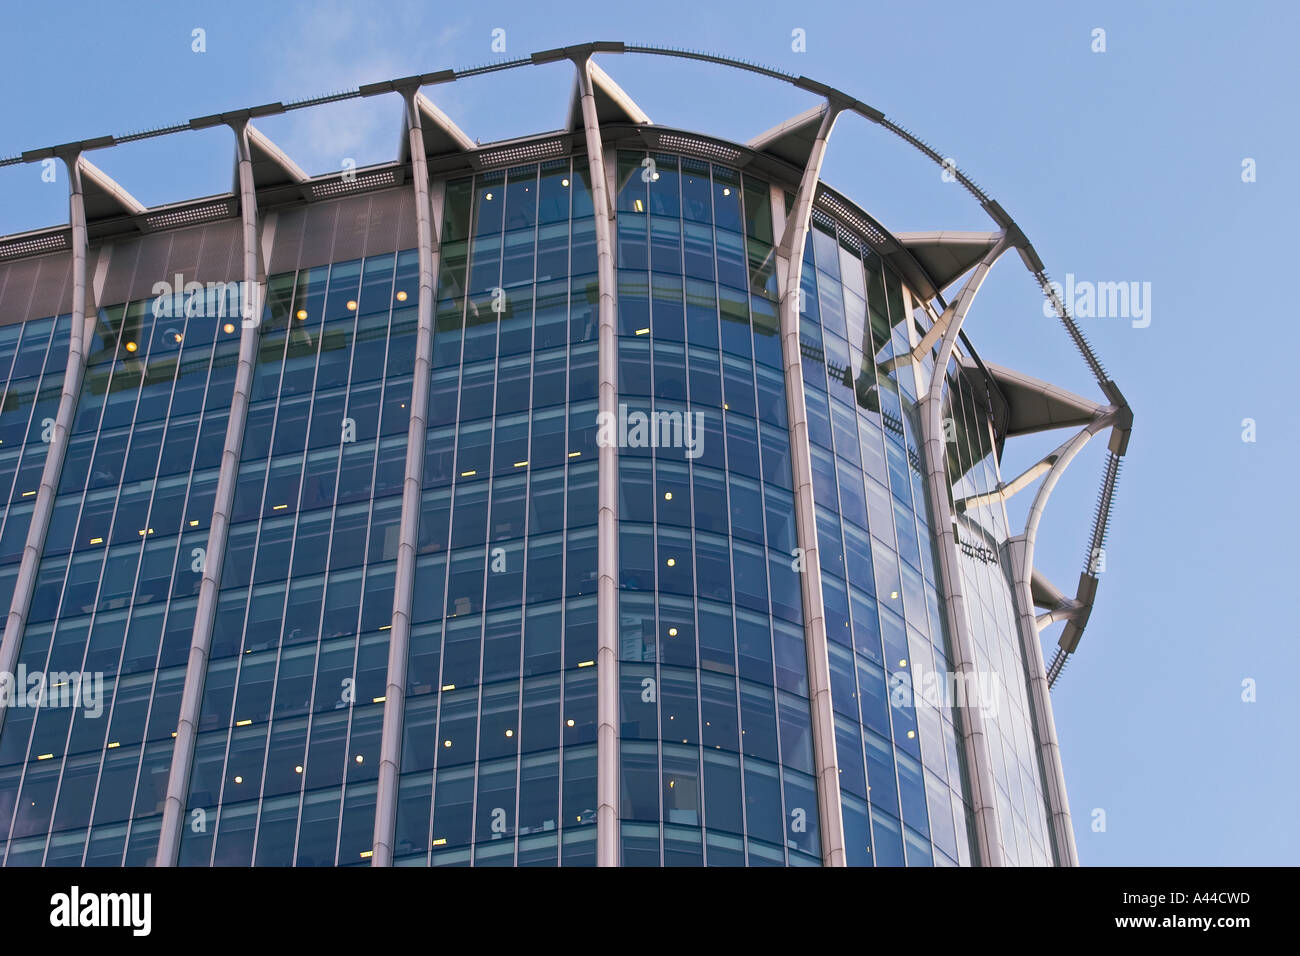 Close up detail of Citypoint building in Ropemaker place - Stock Image